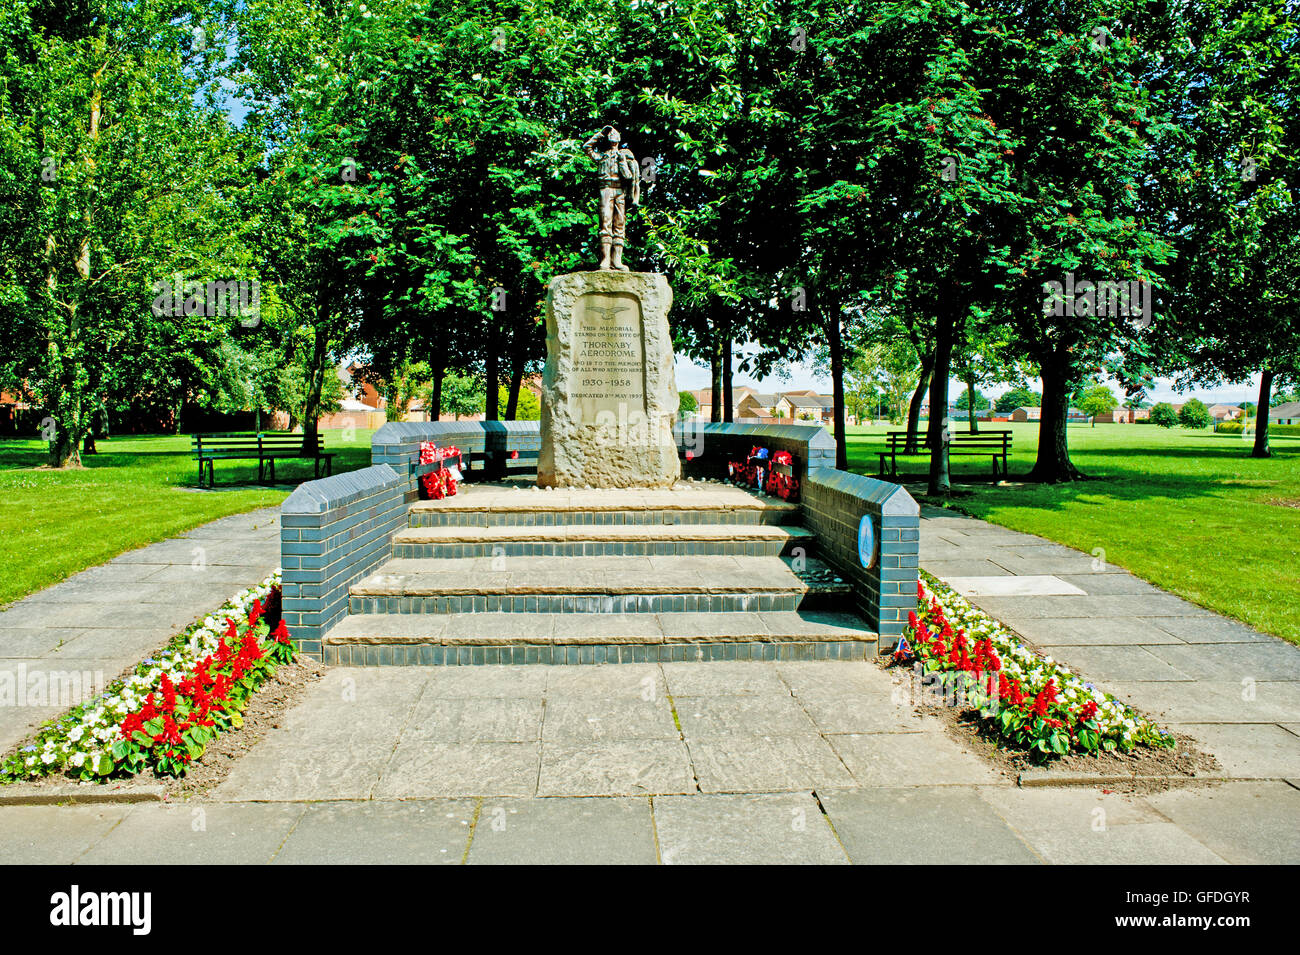 Memorial Statue for Thornaby Aerodrome, Thornaby, Cleveland - Stock Image